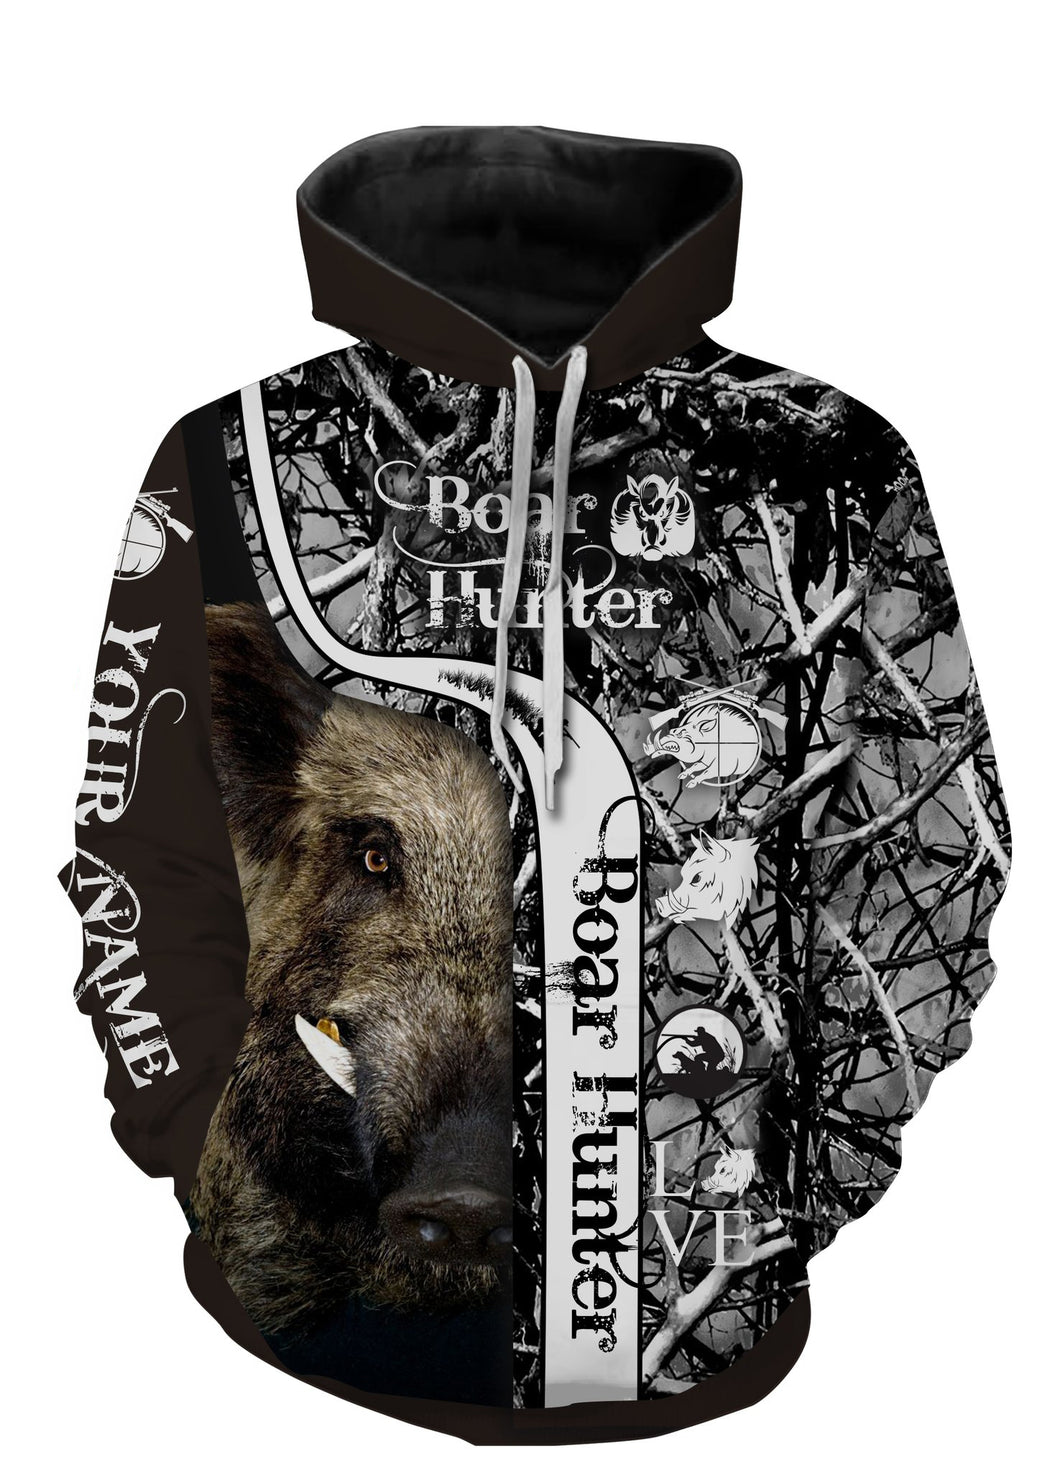 Personalized boar hunter camo muddy full printing shirt and hoodie - TATS21